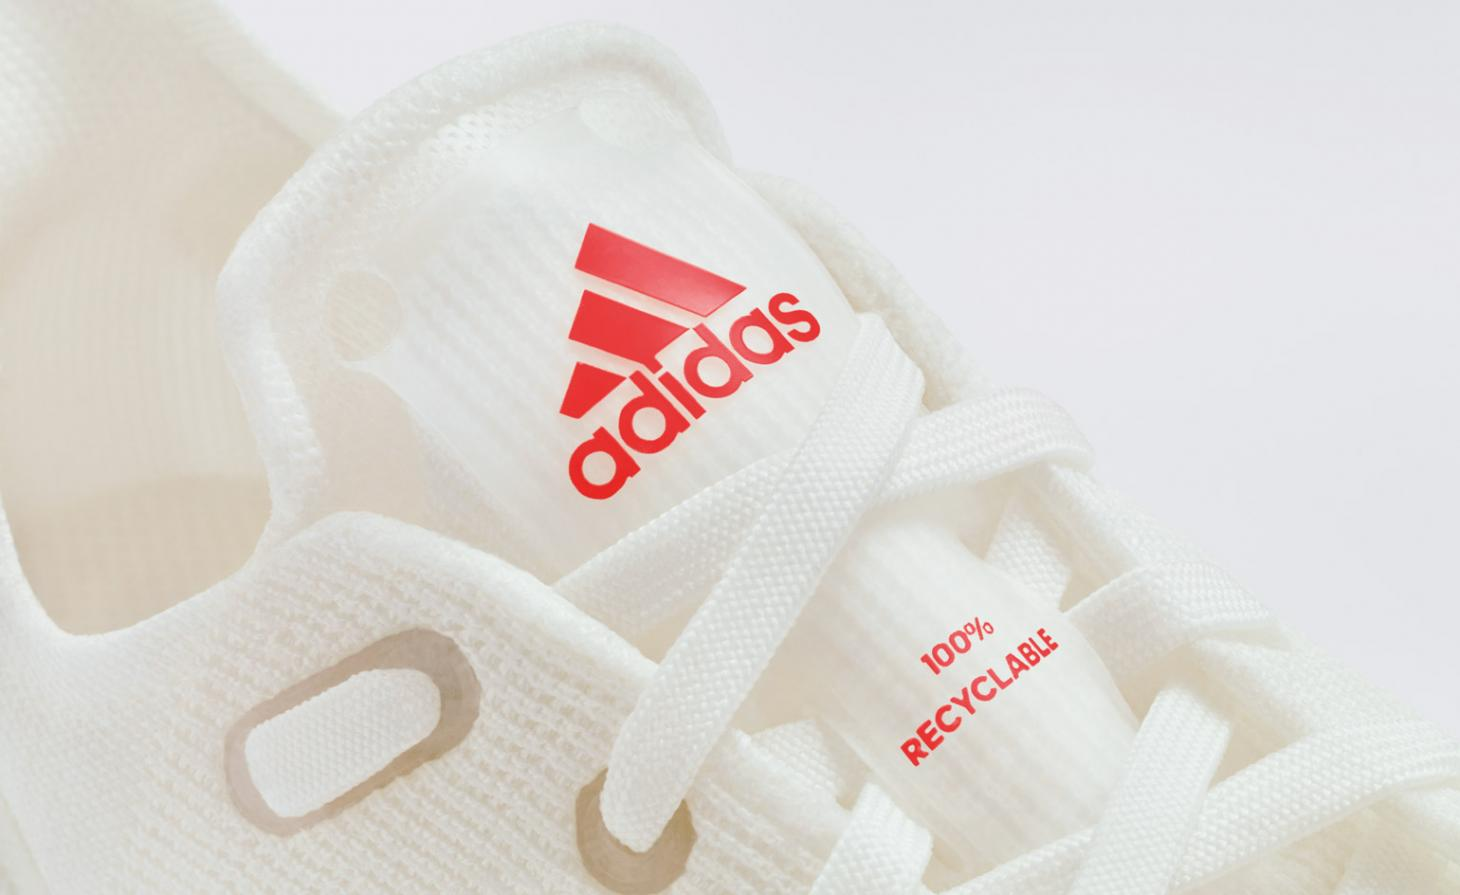 Adidas launches first fully recyclable